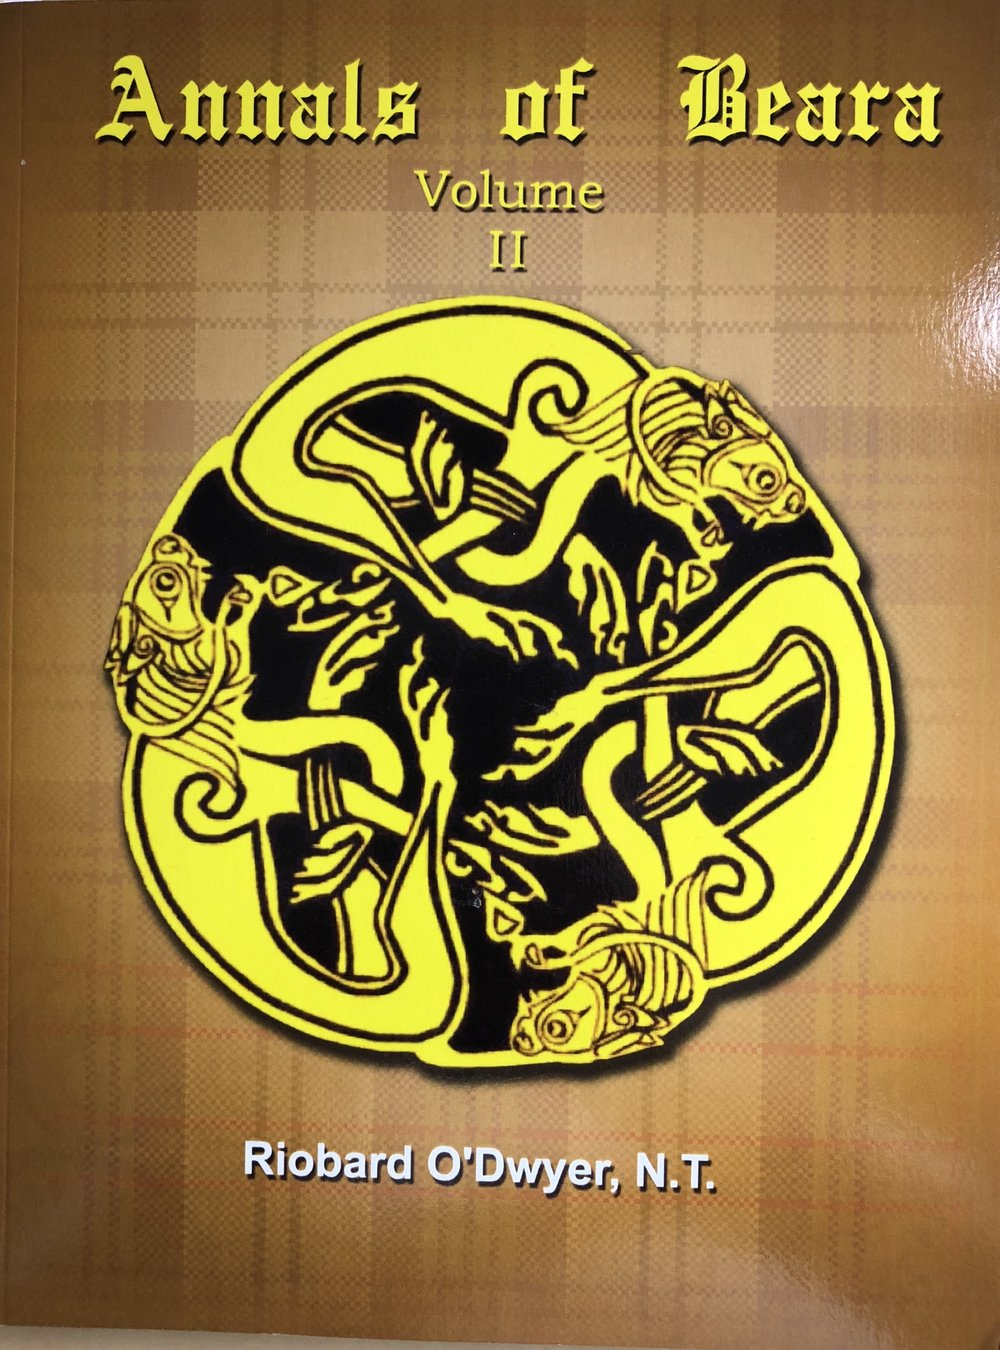 Annals of Beara - Volume II by Riobard O'Dwyer